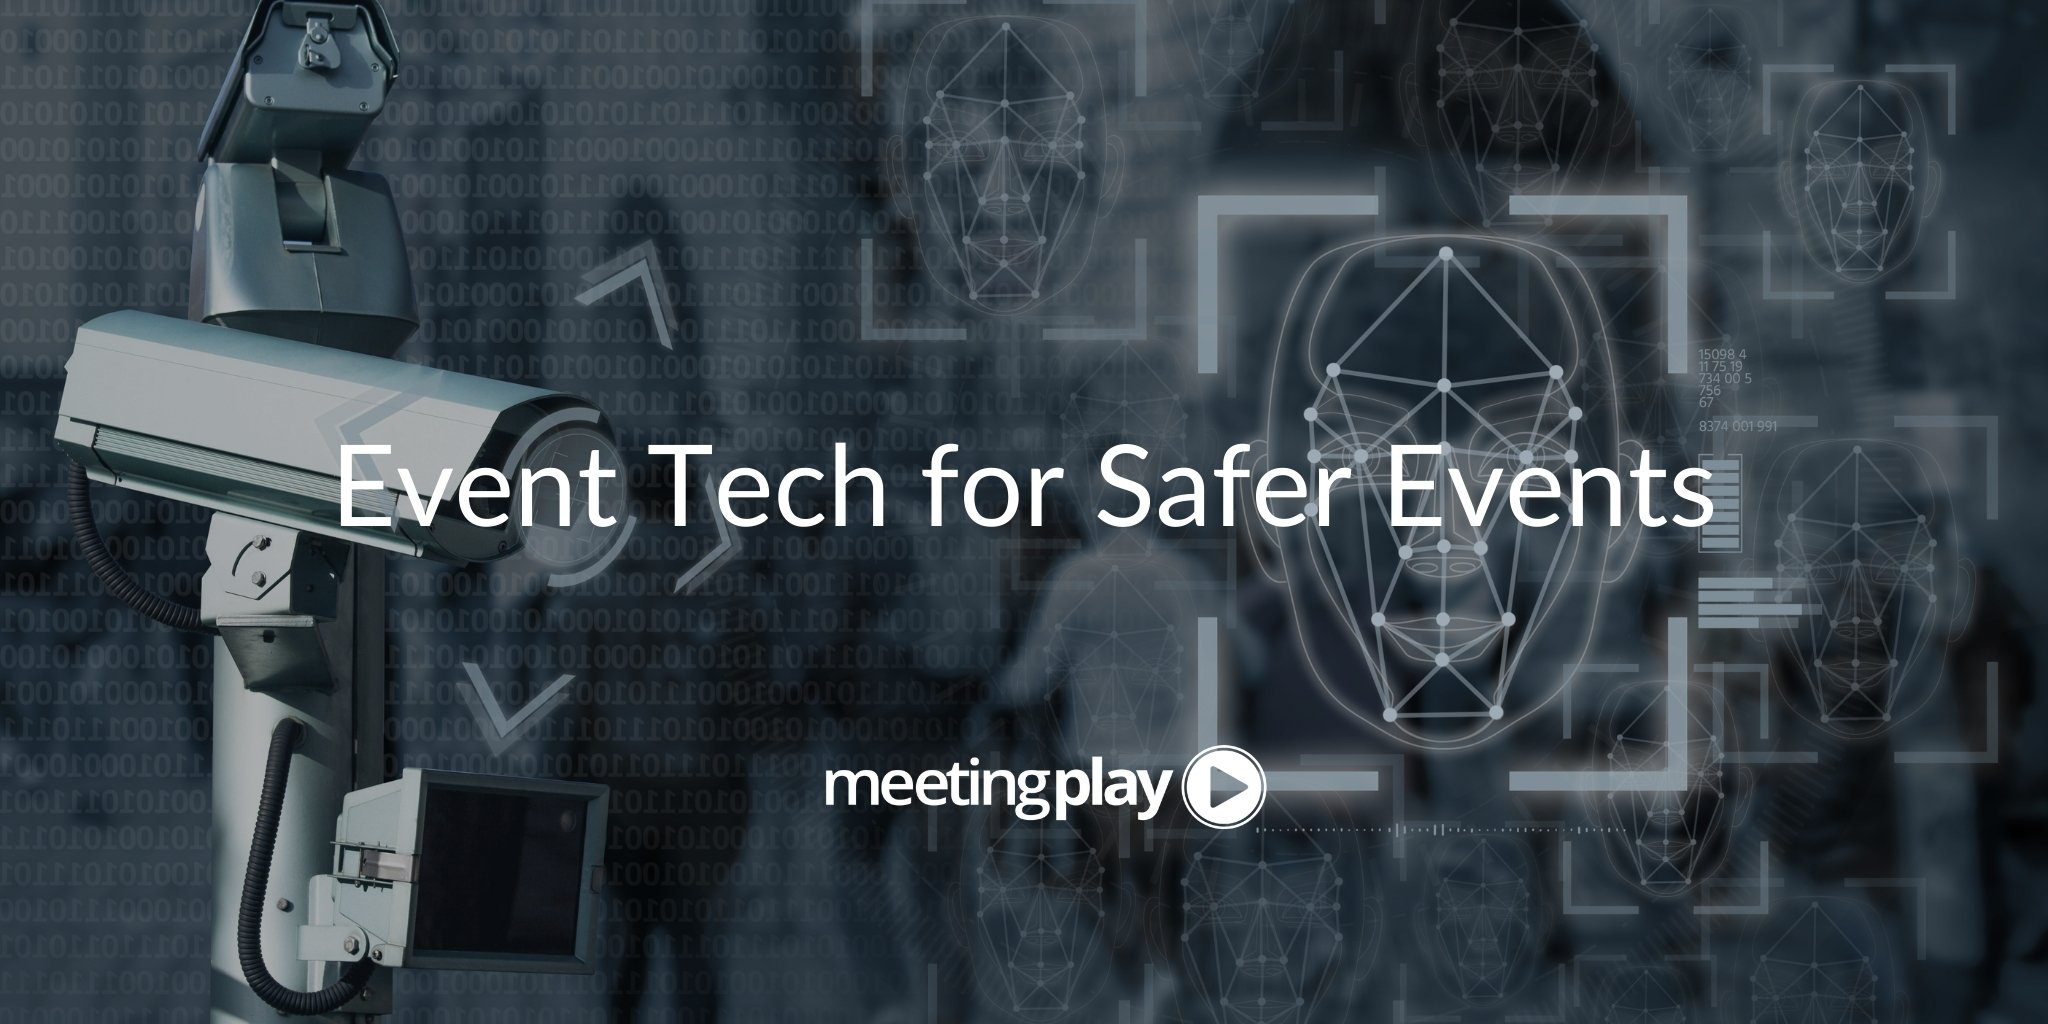 Event Tech for Safer Events